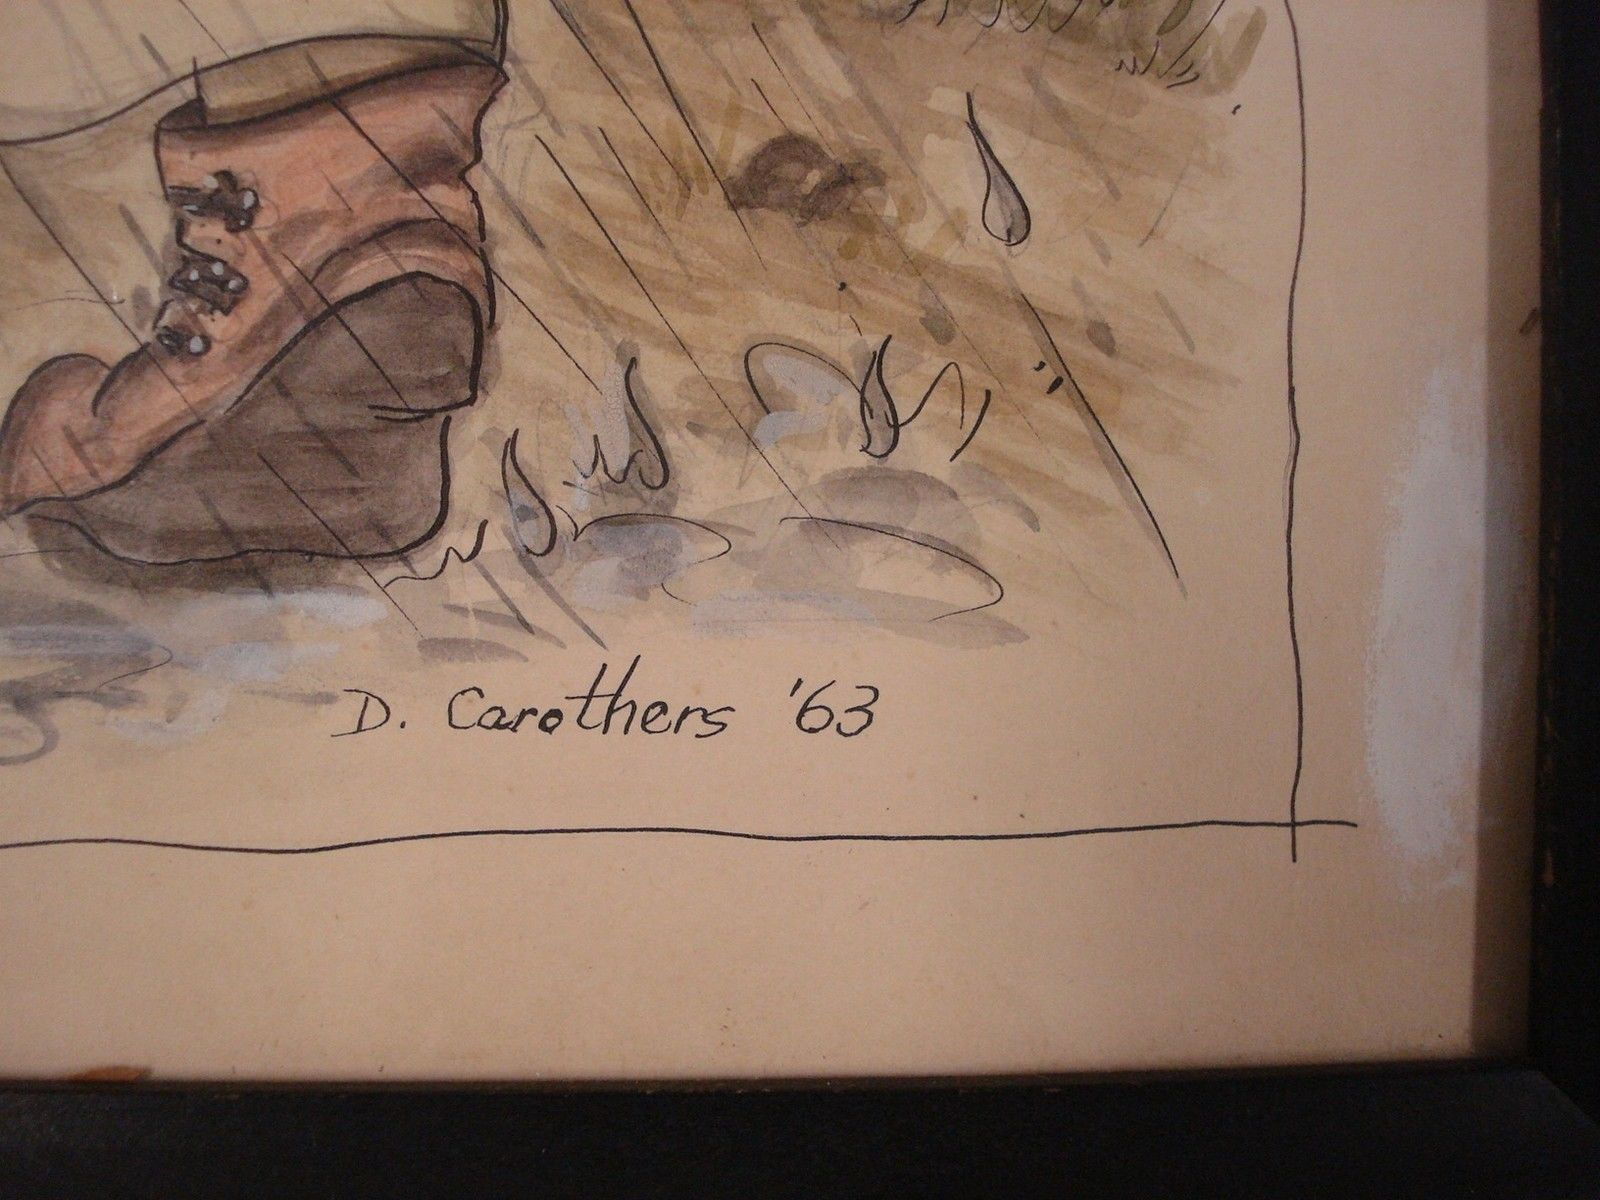 Children Puppy Art Watercolor Painting D Carothers 1963 Signed 00376